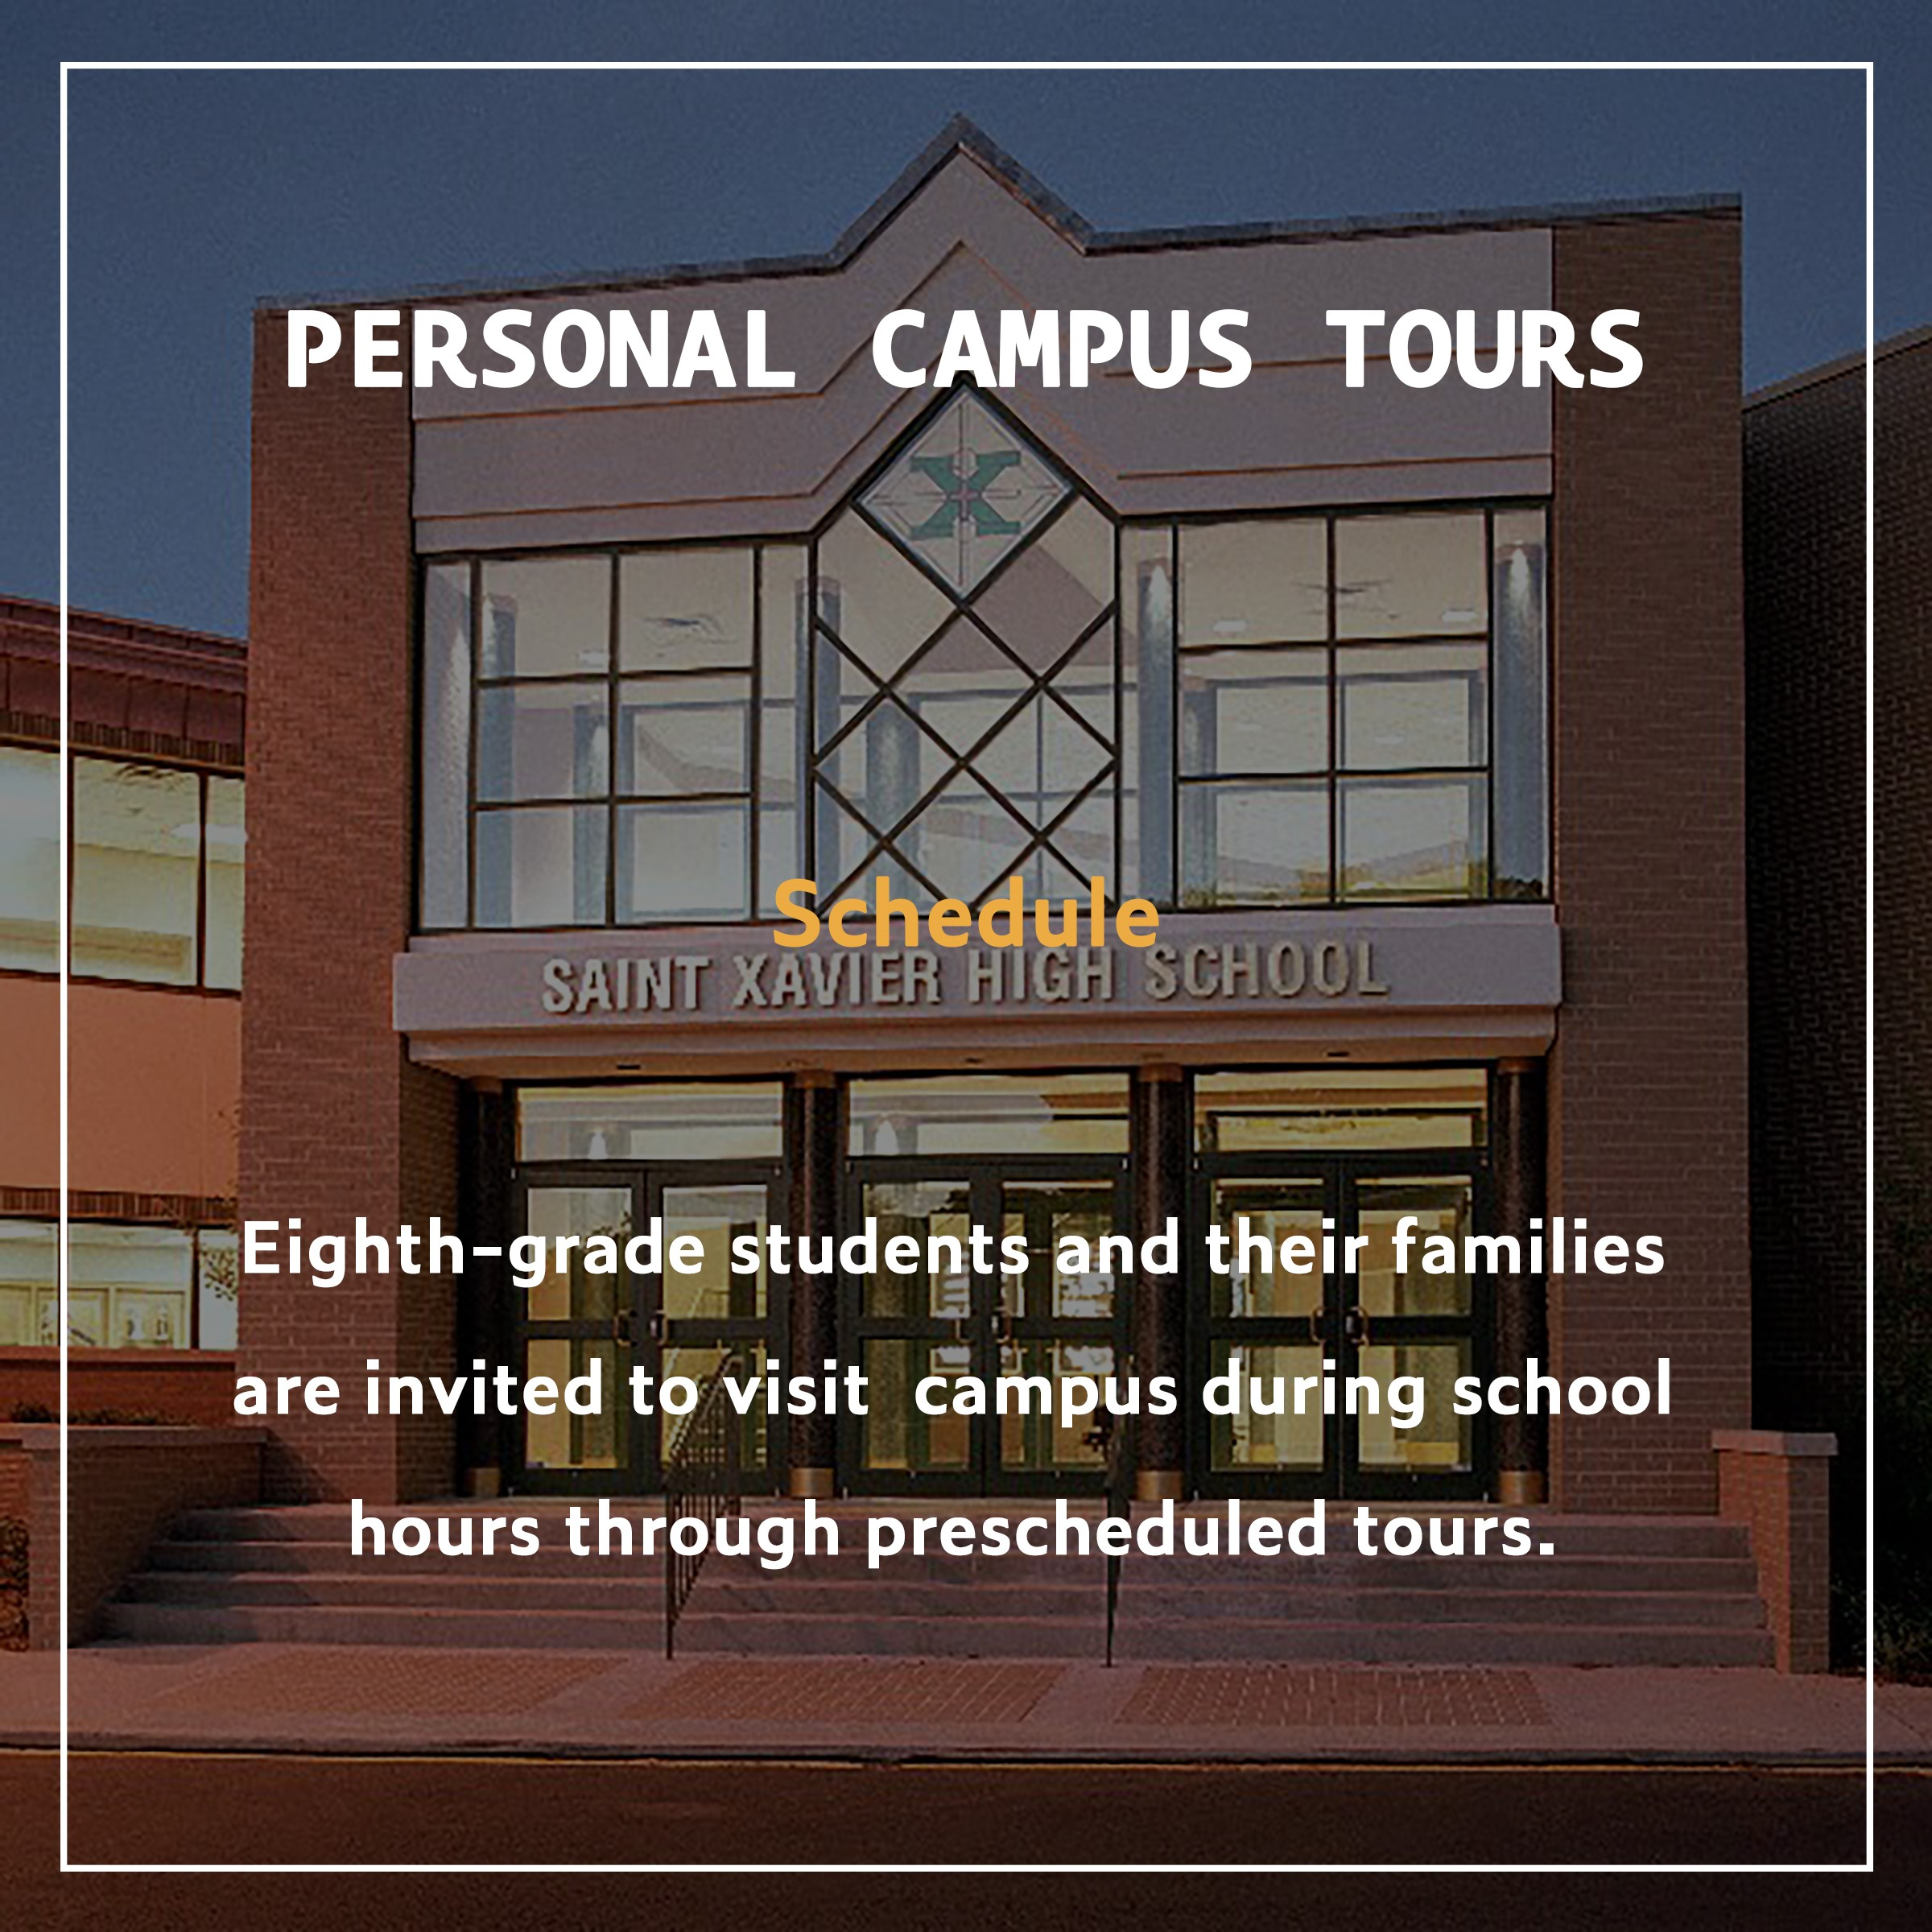 Personal Campus Tours